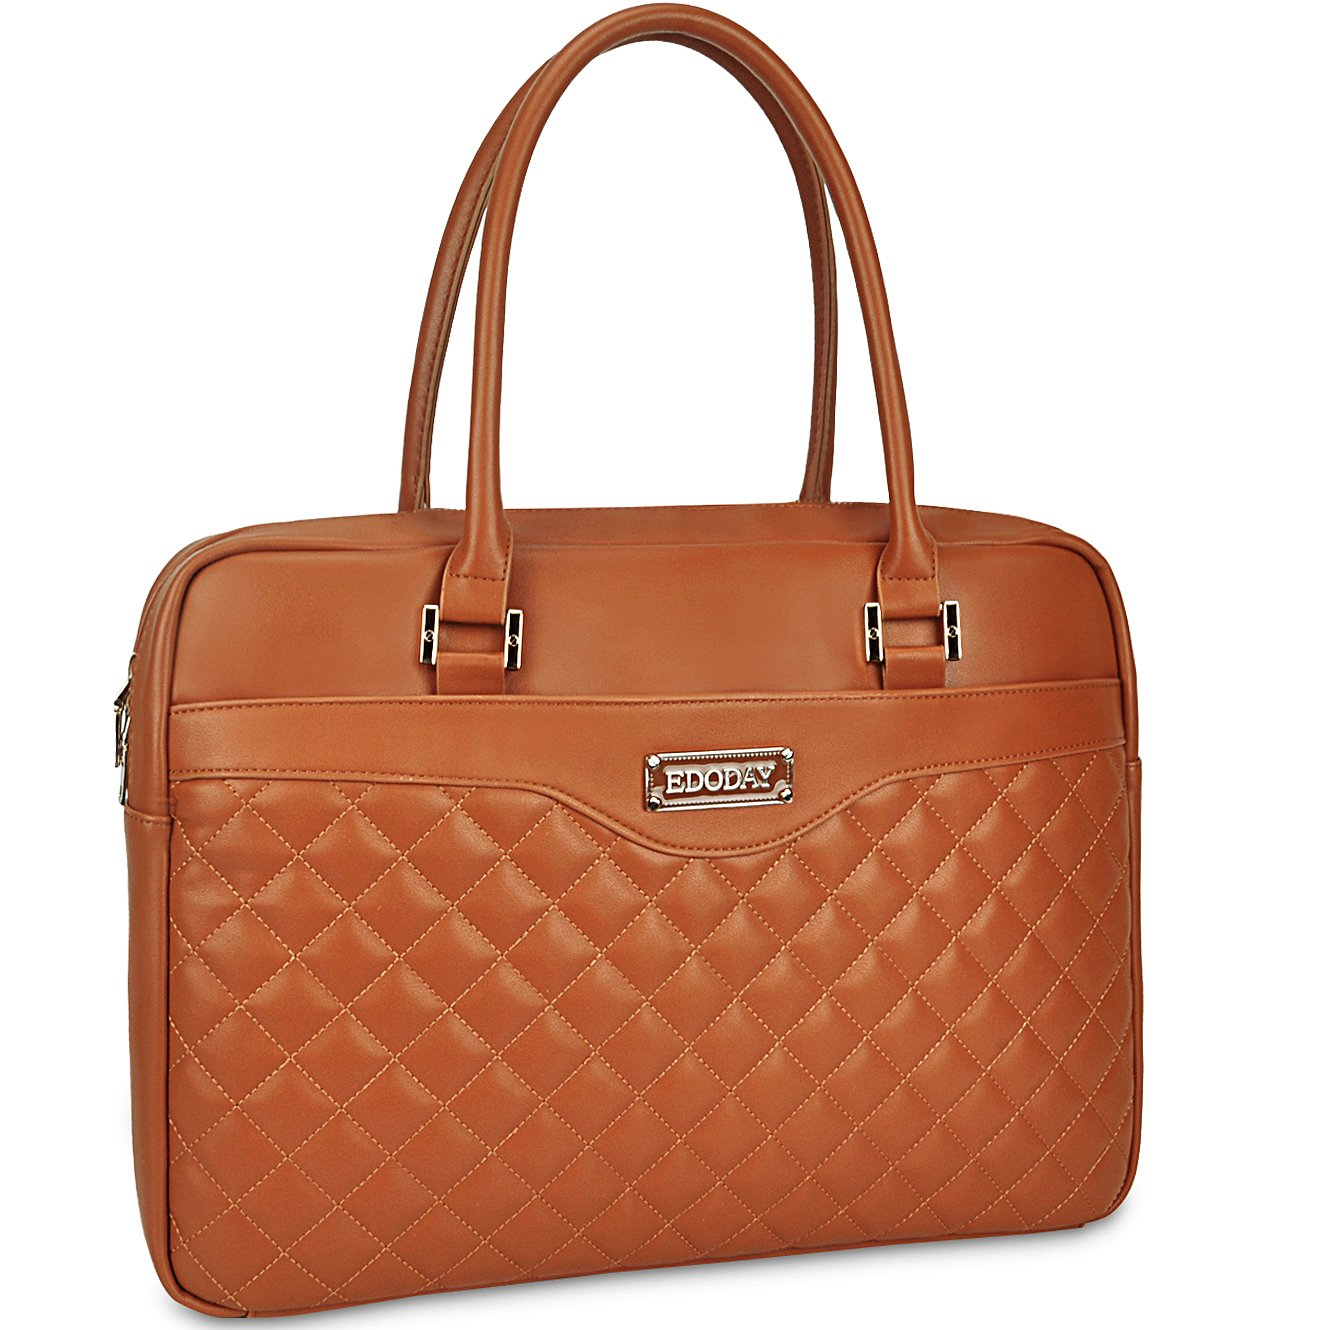 Laptop Bag for Women,Fit 15.6 in Work Travel Laptop Tote Bag with Multi Layer Padding by EDODAY[L0012/brown]